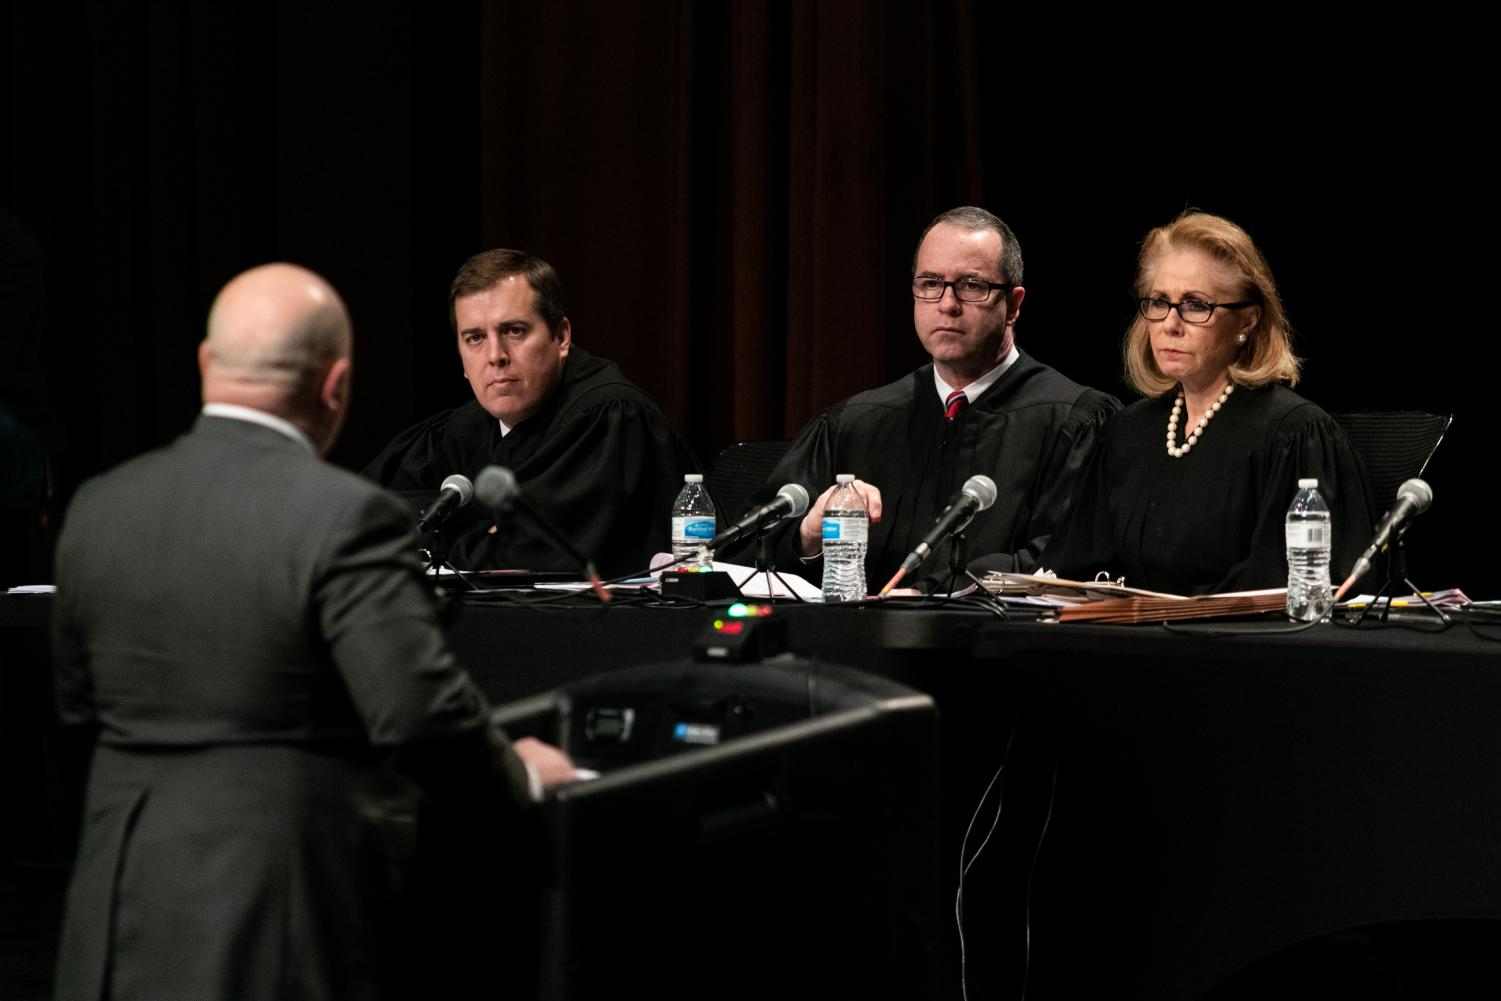 Texas Supreme Court Justices hear oral arguments from various lawyers. The Court joined the Arkansas Supreme Court in hosting a series of events at the end of January.